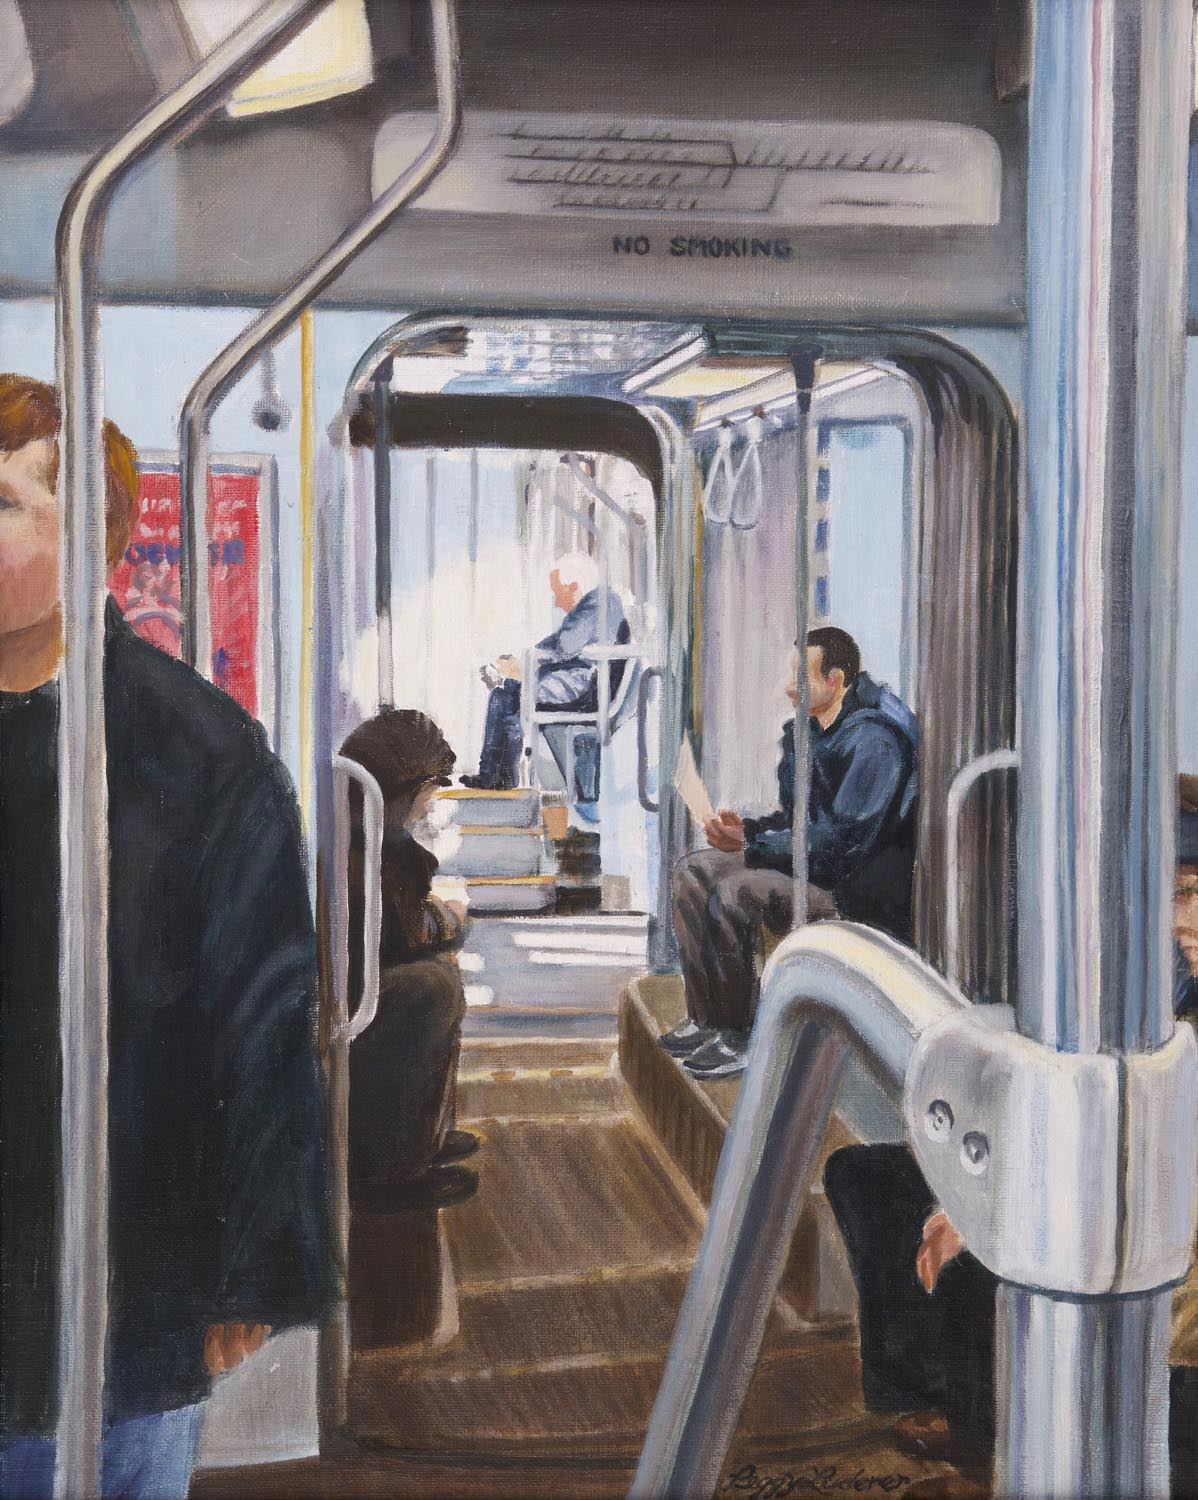 17 - Morning on the Green Line